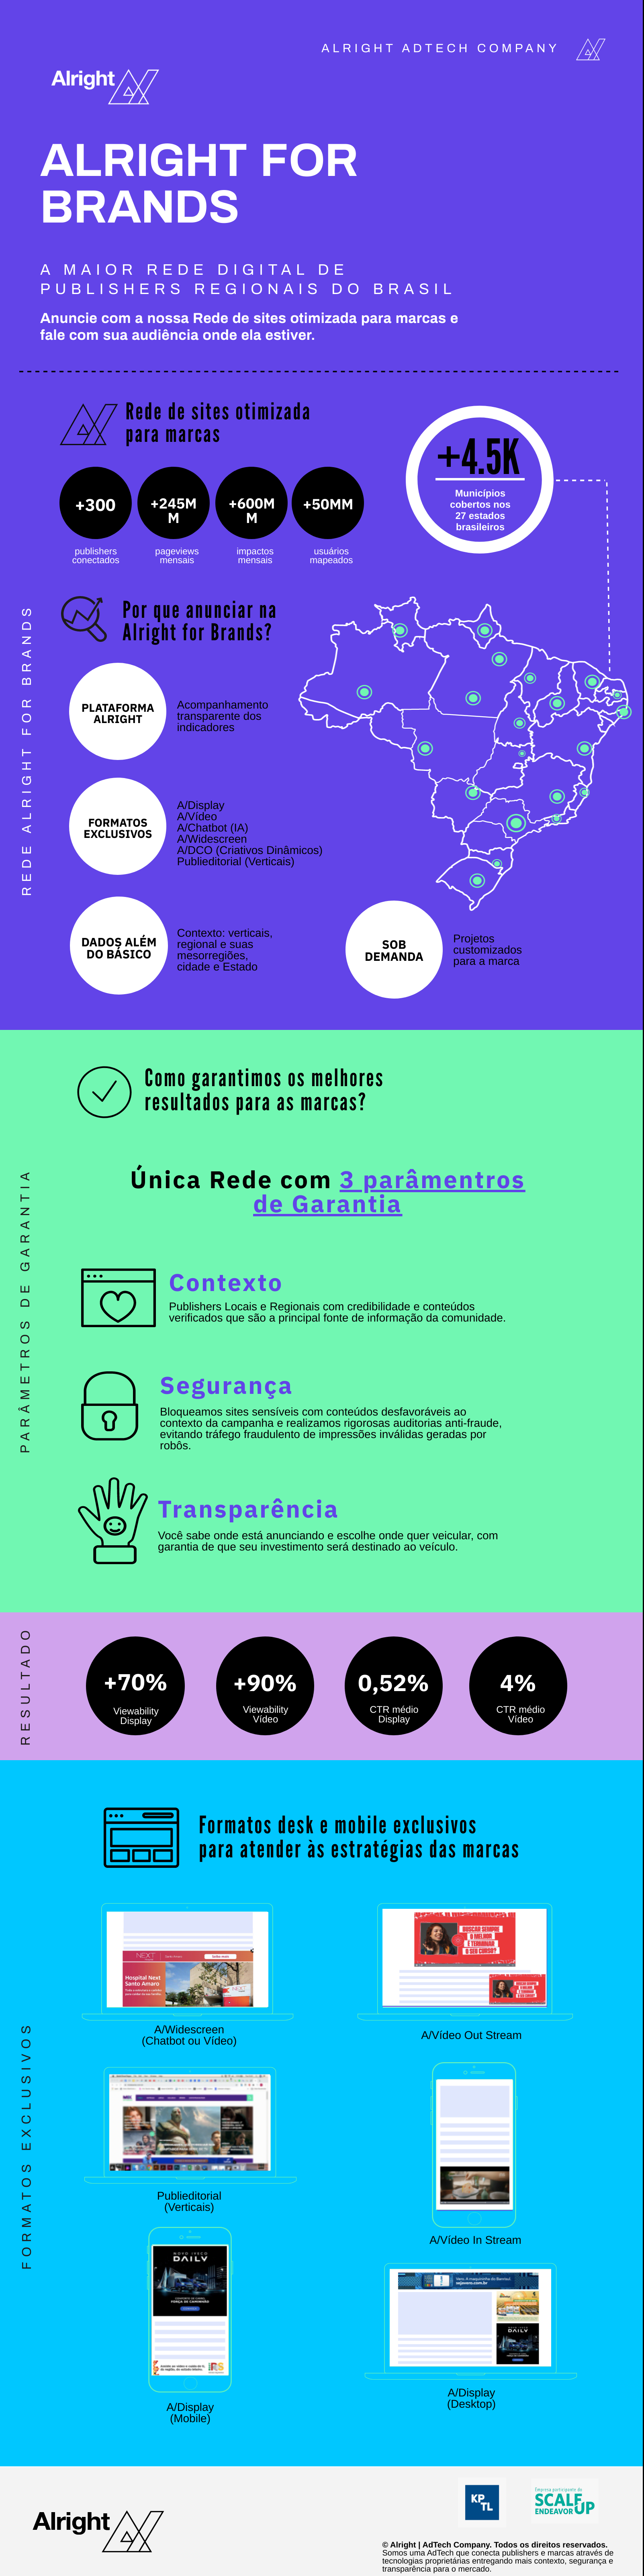 Infográfico Alright for Brands